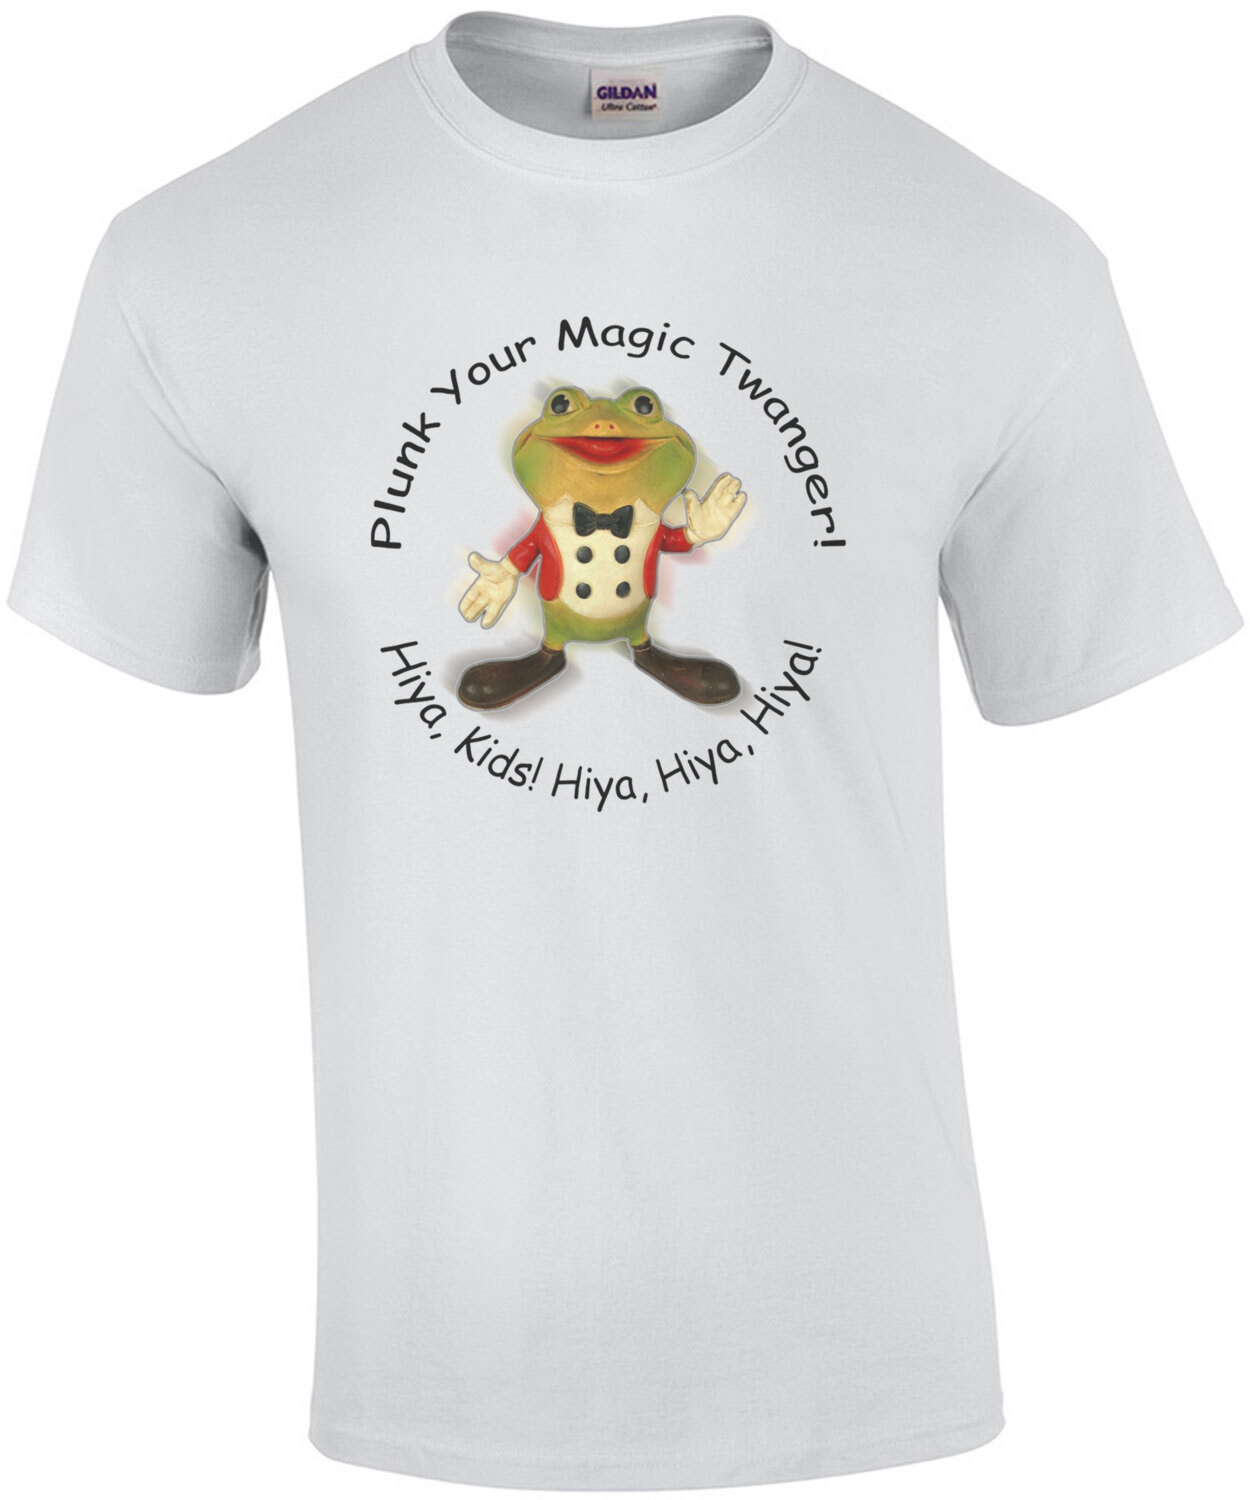 Plunk Your Magic Twanger! T-Shirt